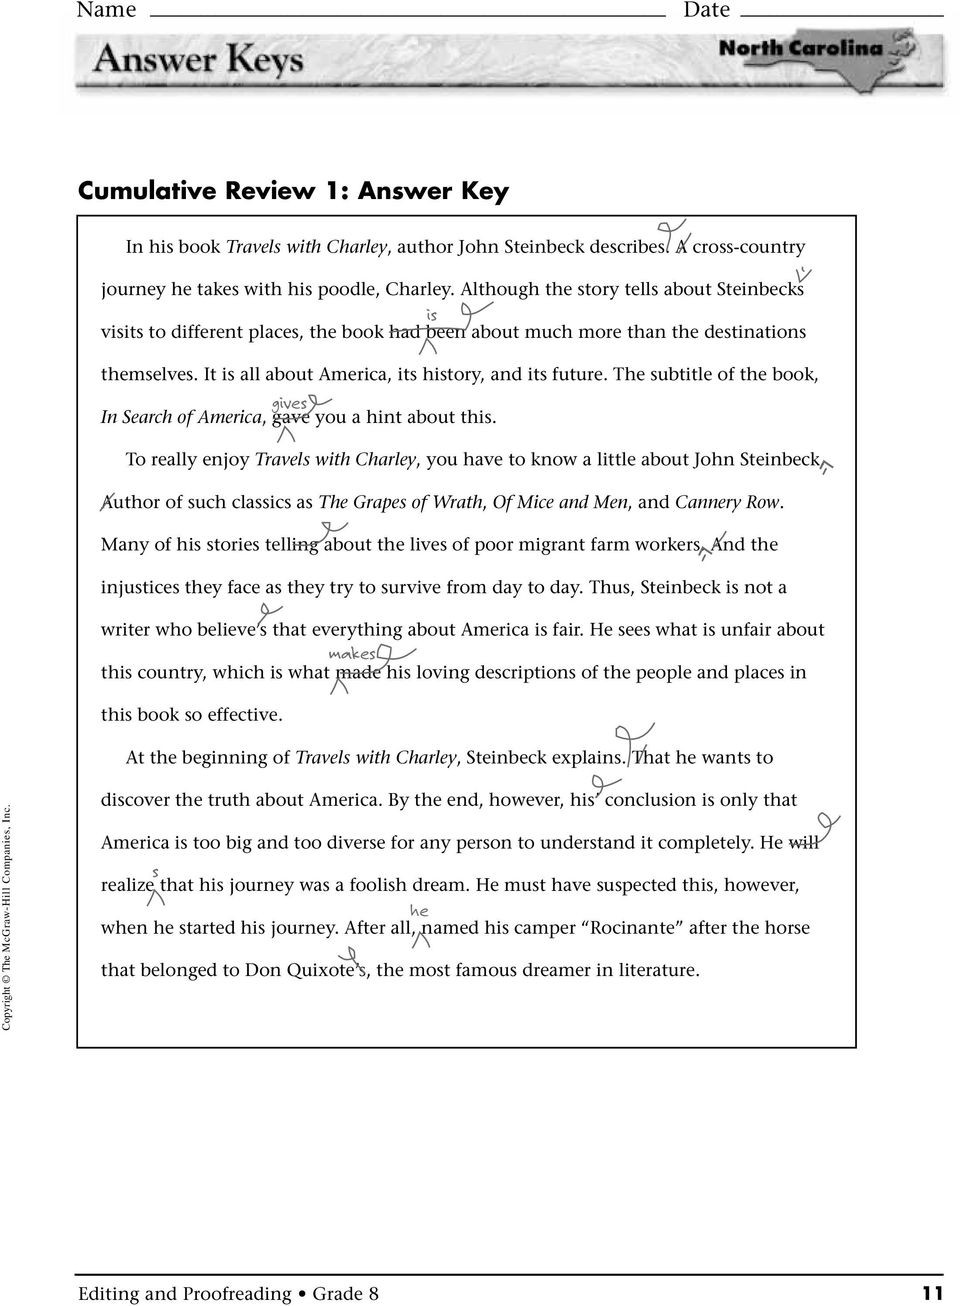 Editing Worksheets High School Editing and Proofreading Pdf Free Download